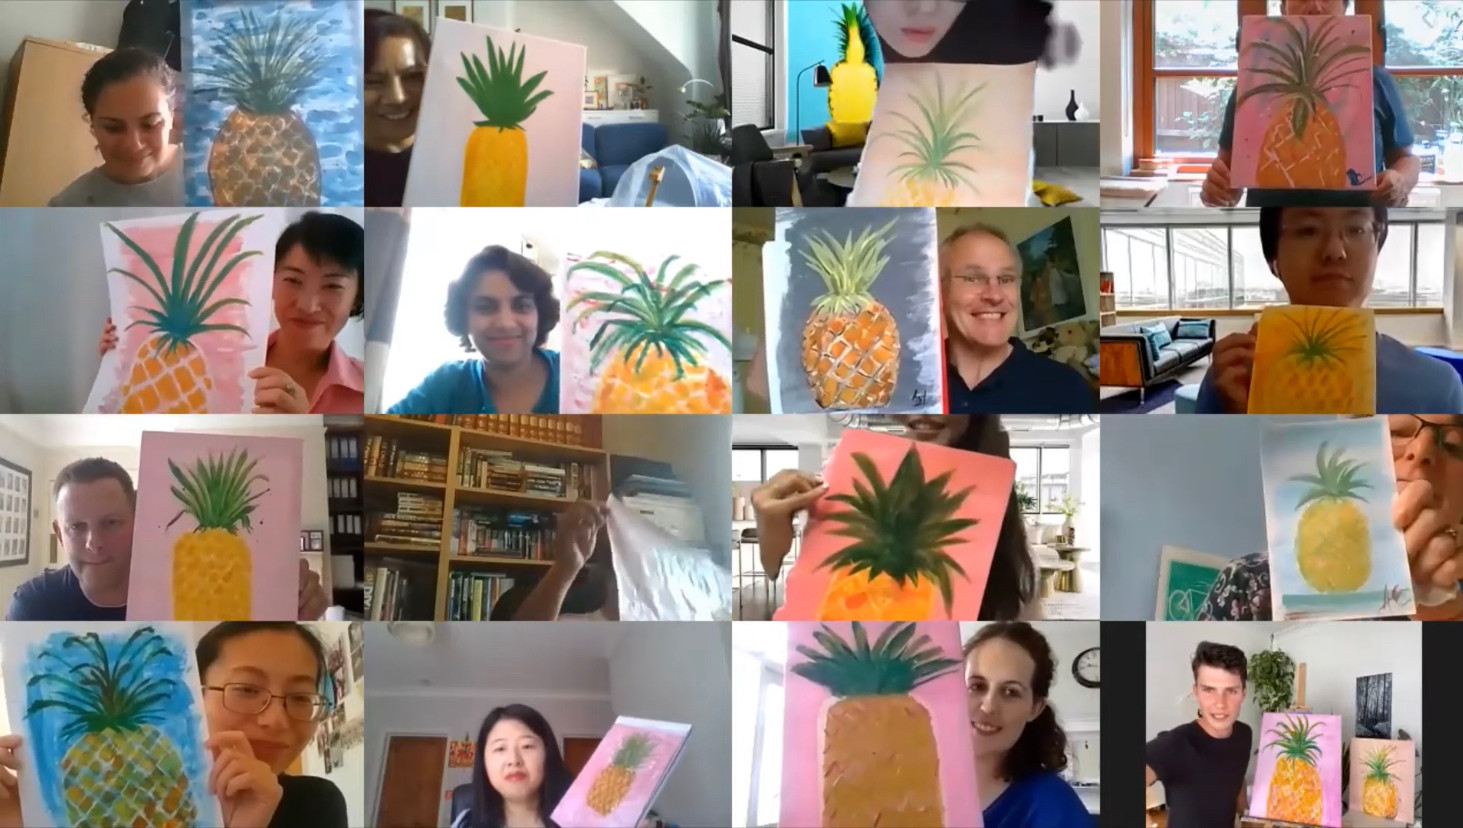 One of our virtual painting events.